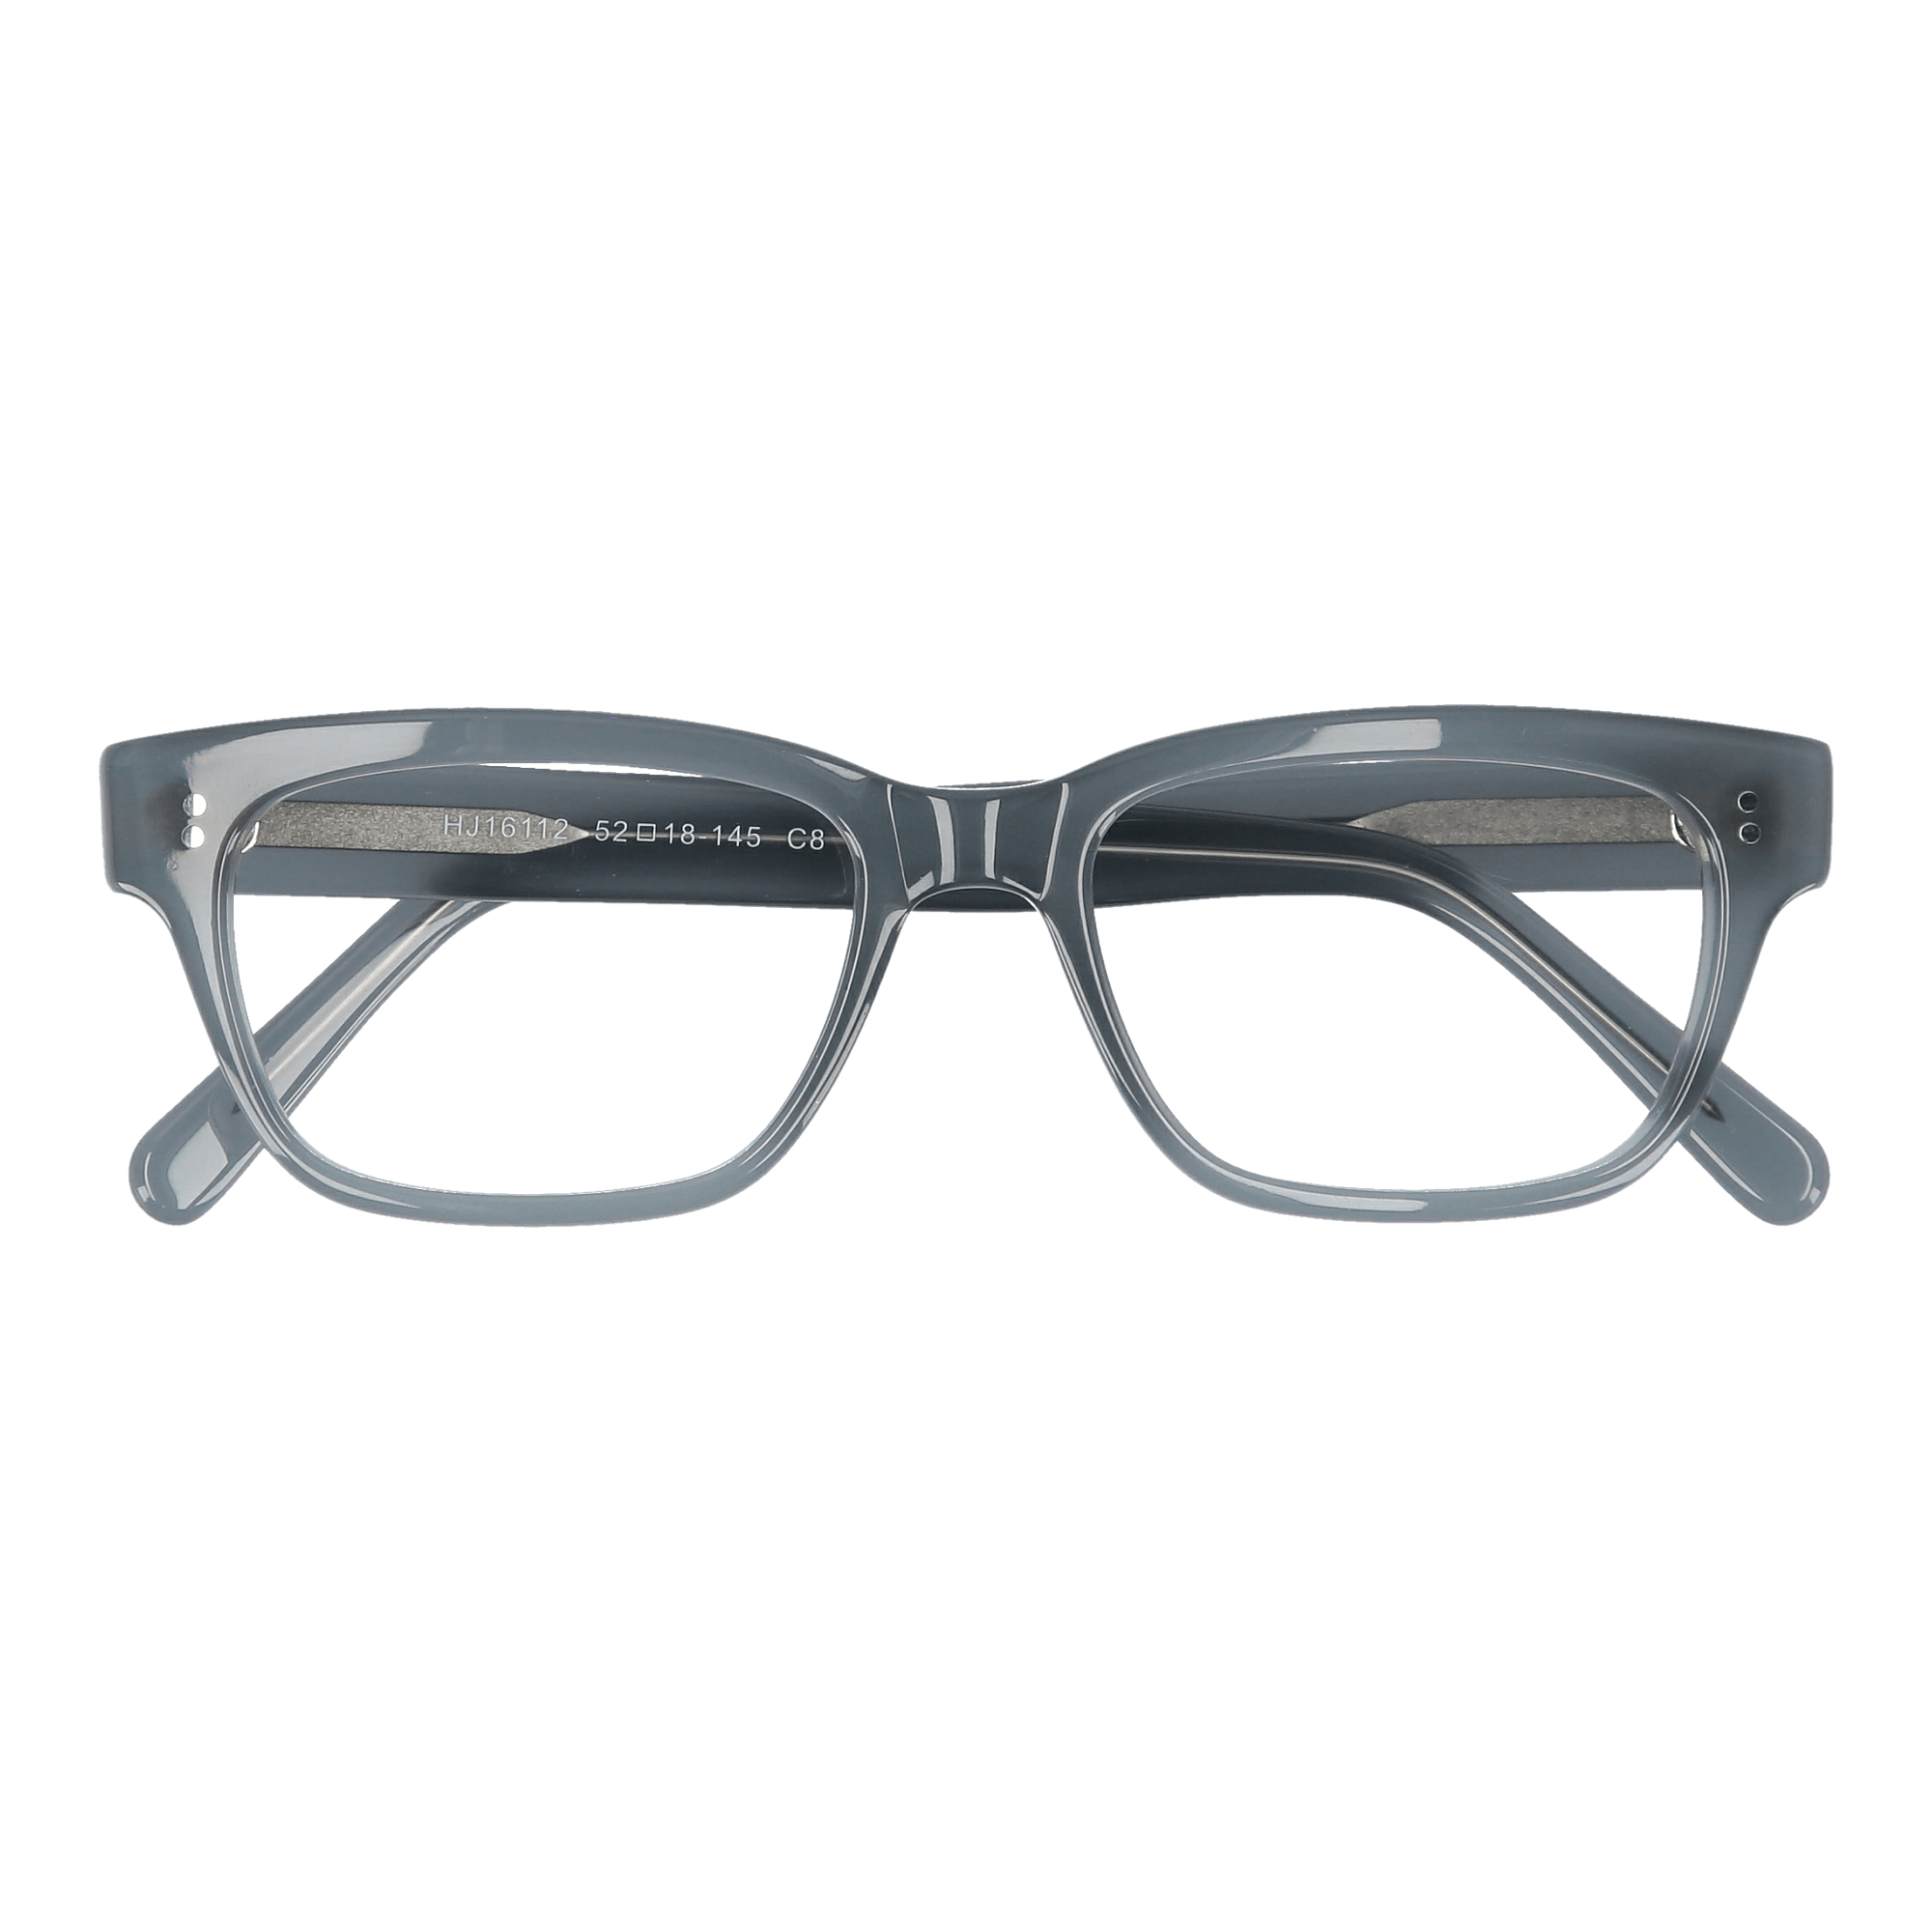 CALLAHAN OPTICAL SAINT REETS